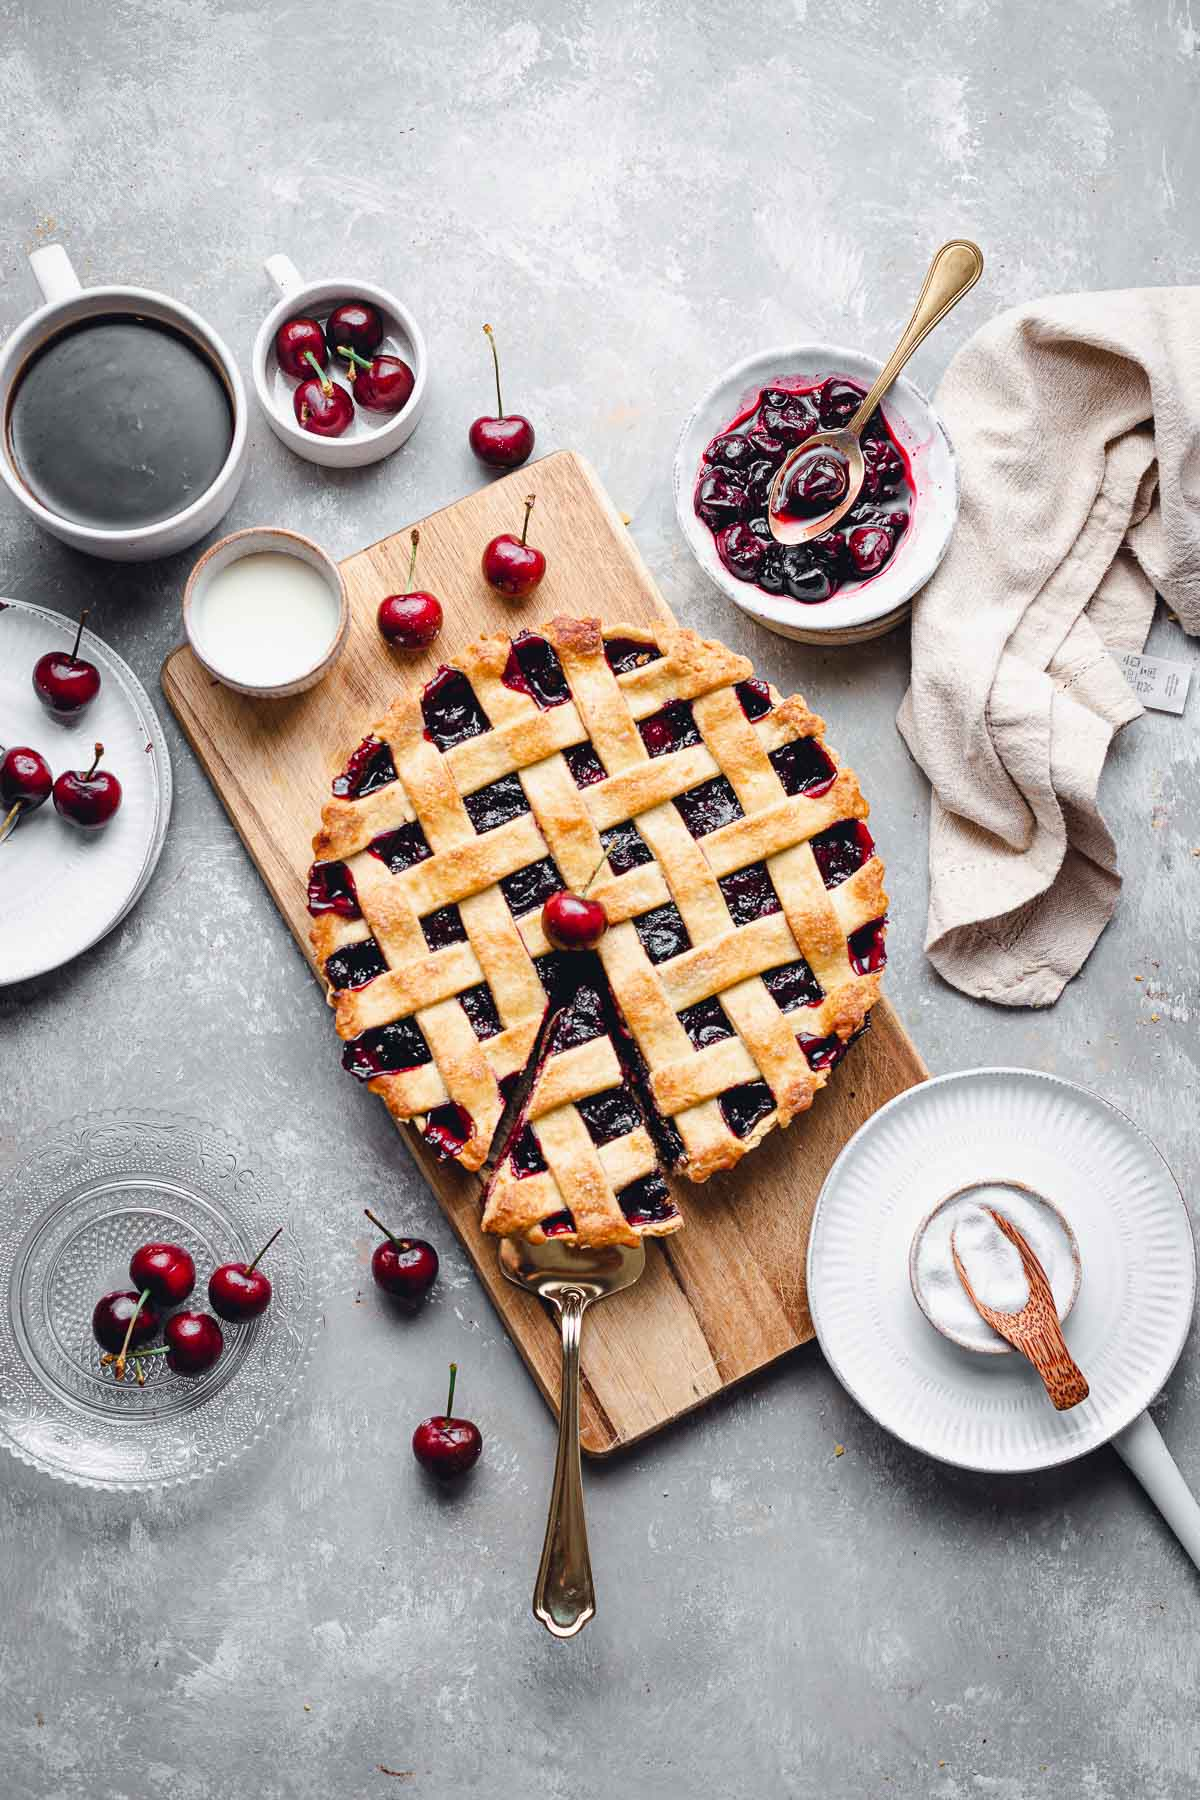 A cherry pie placed on a wooden board with various plates and bowls placed next to it.